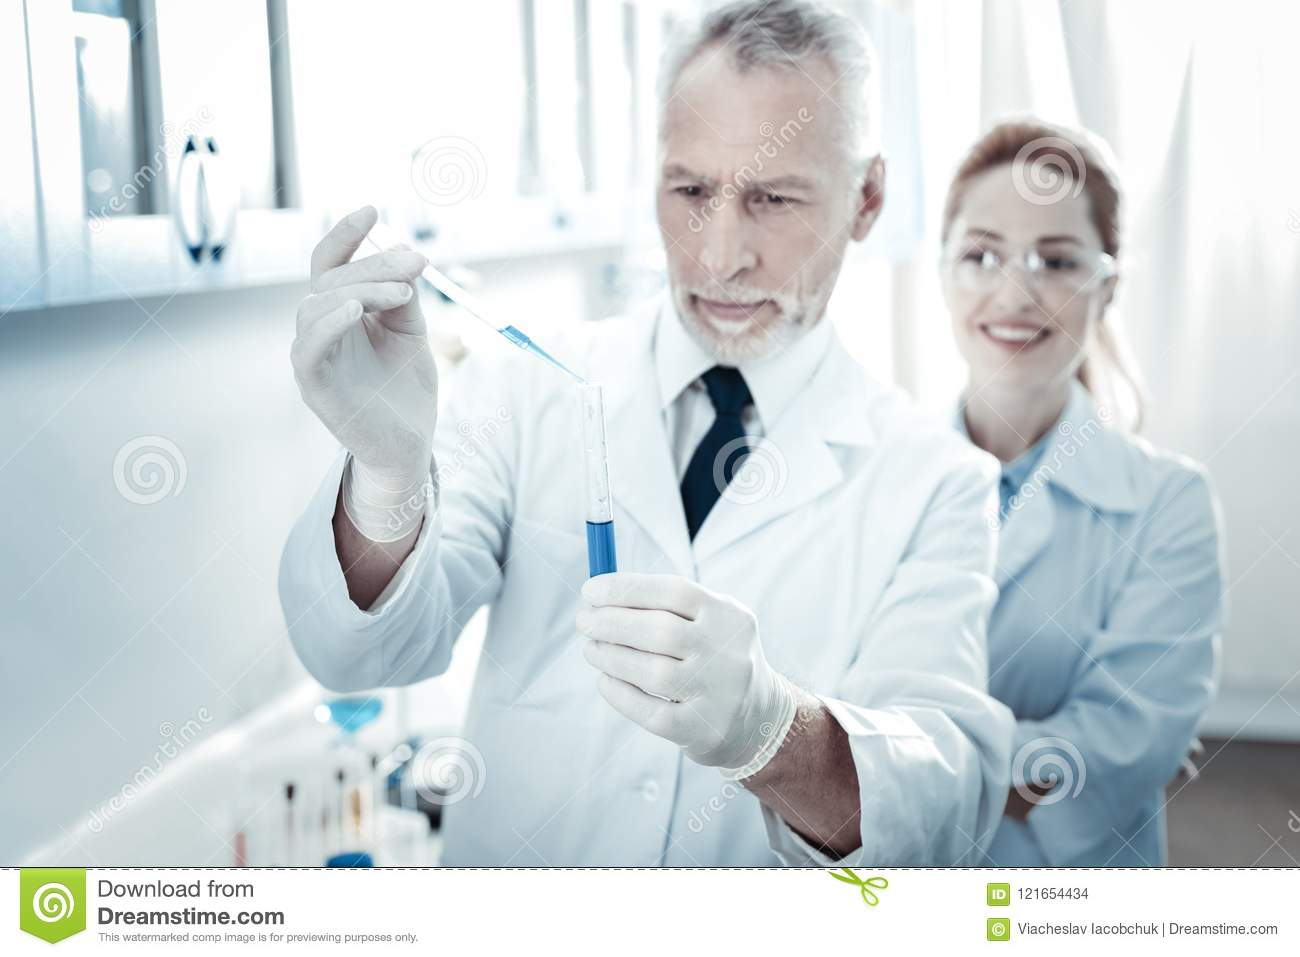 Test Tube Being Held By A Smart Professional Scientist